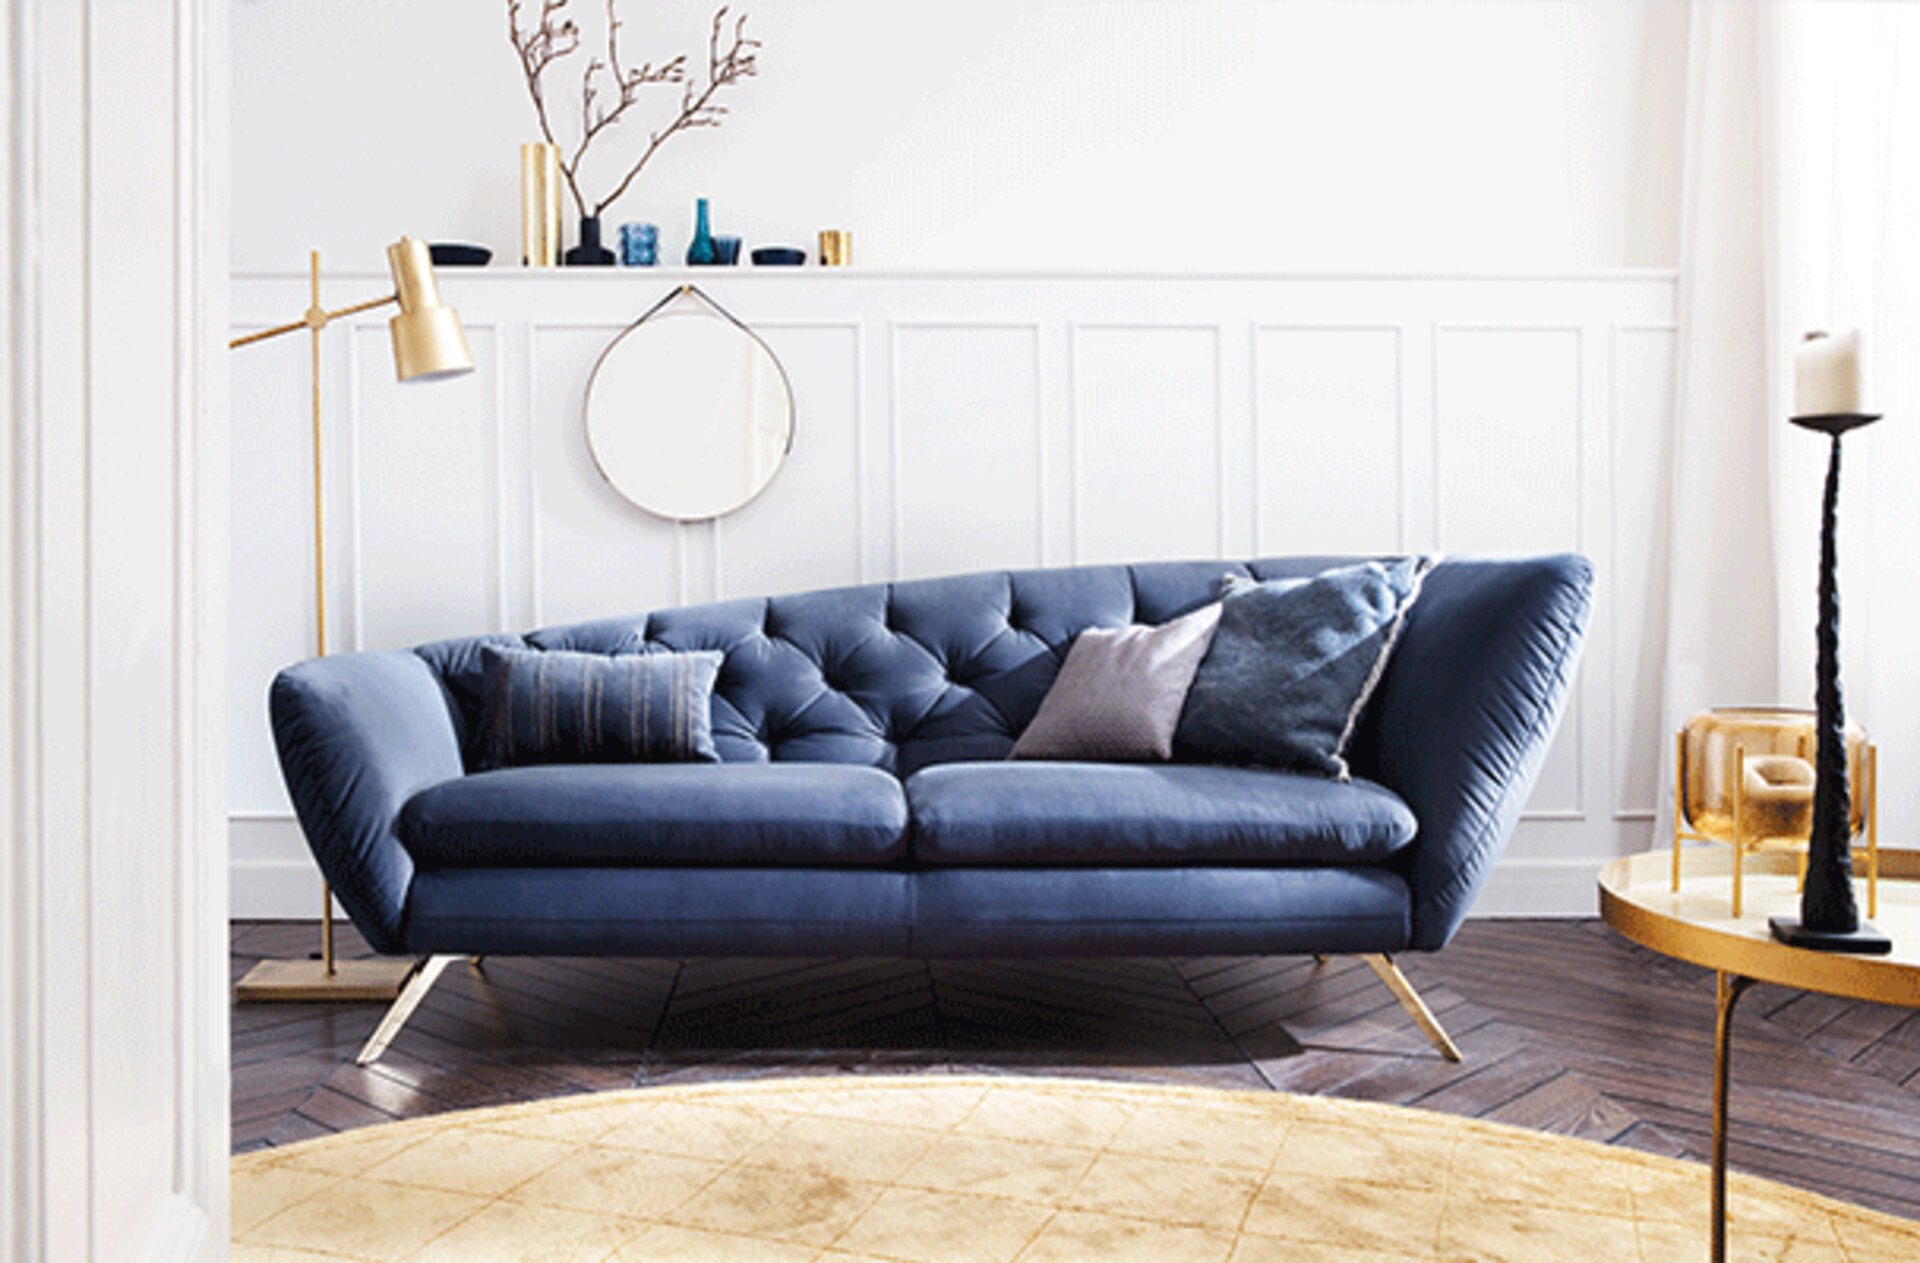 Polstersofa in Canape-Form in dunklerem Blau.